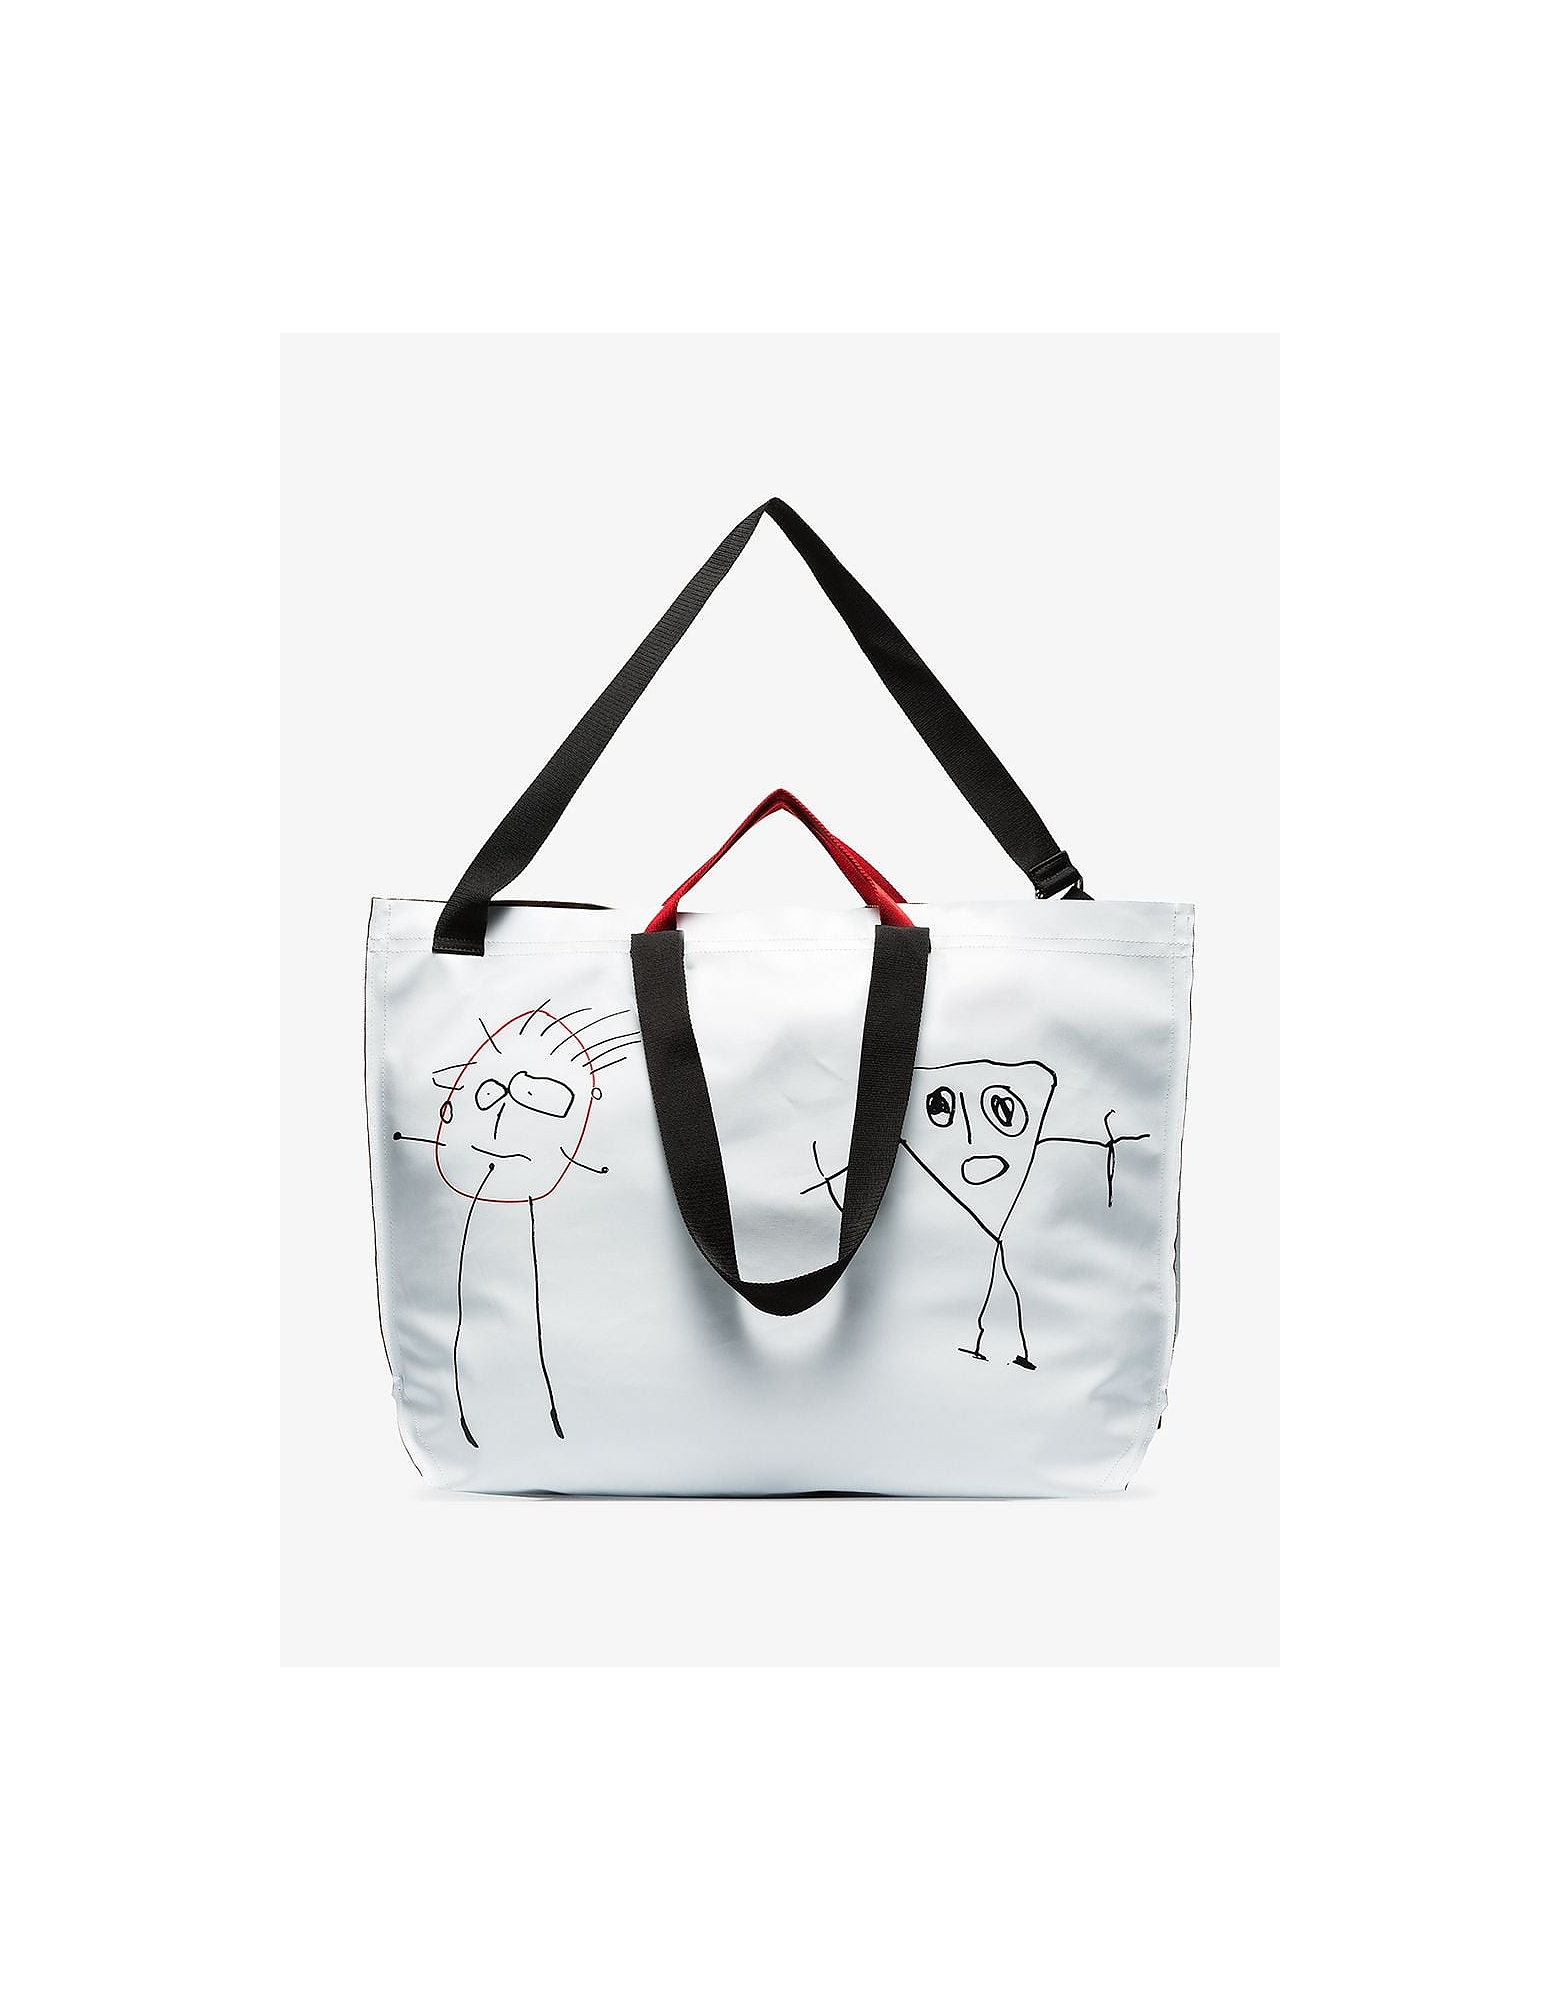 Plan C Designer Handbags, White Large Sketch Tote Bag